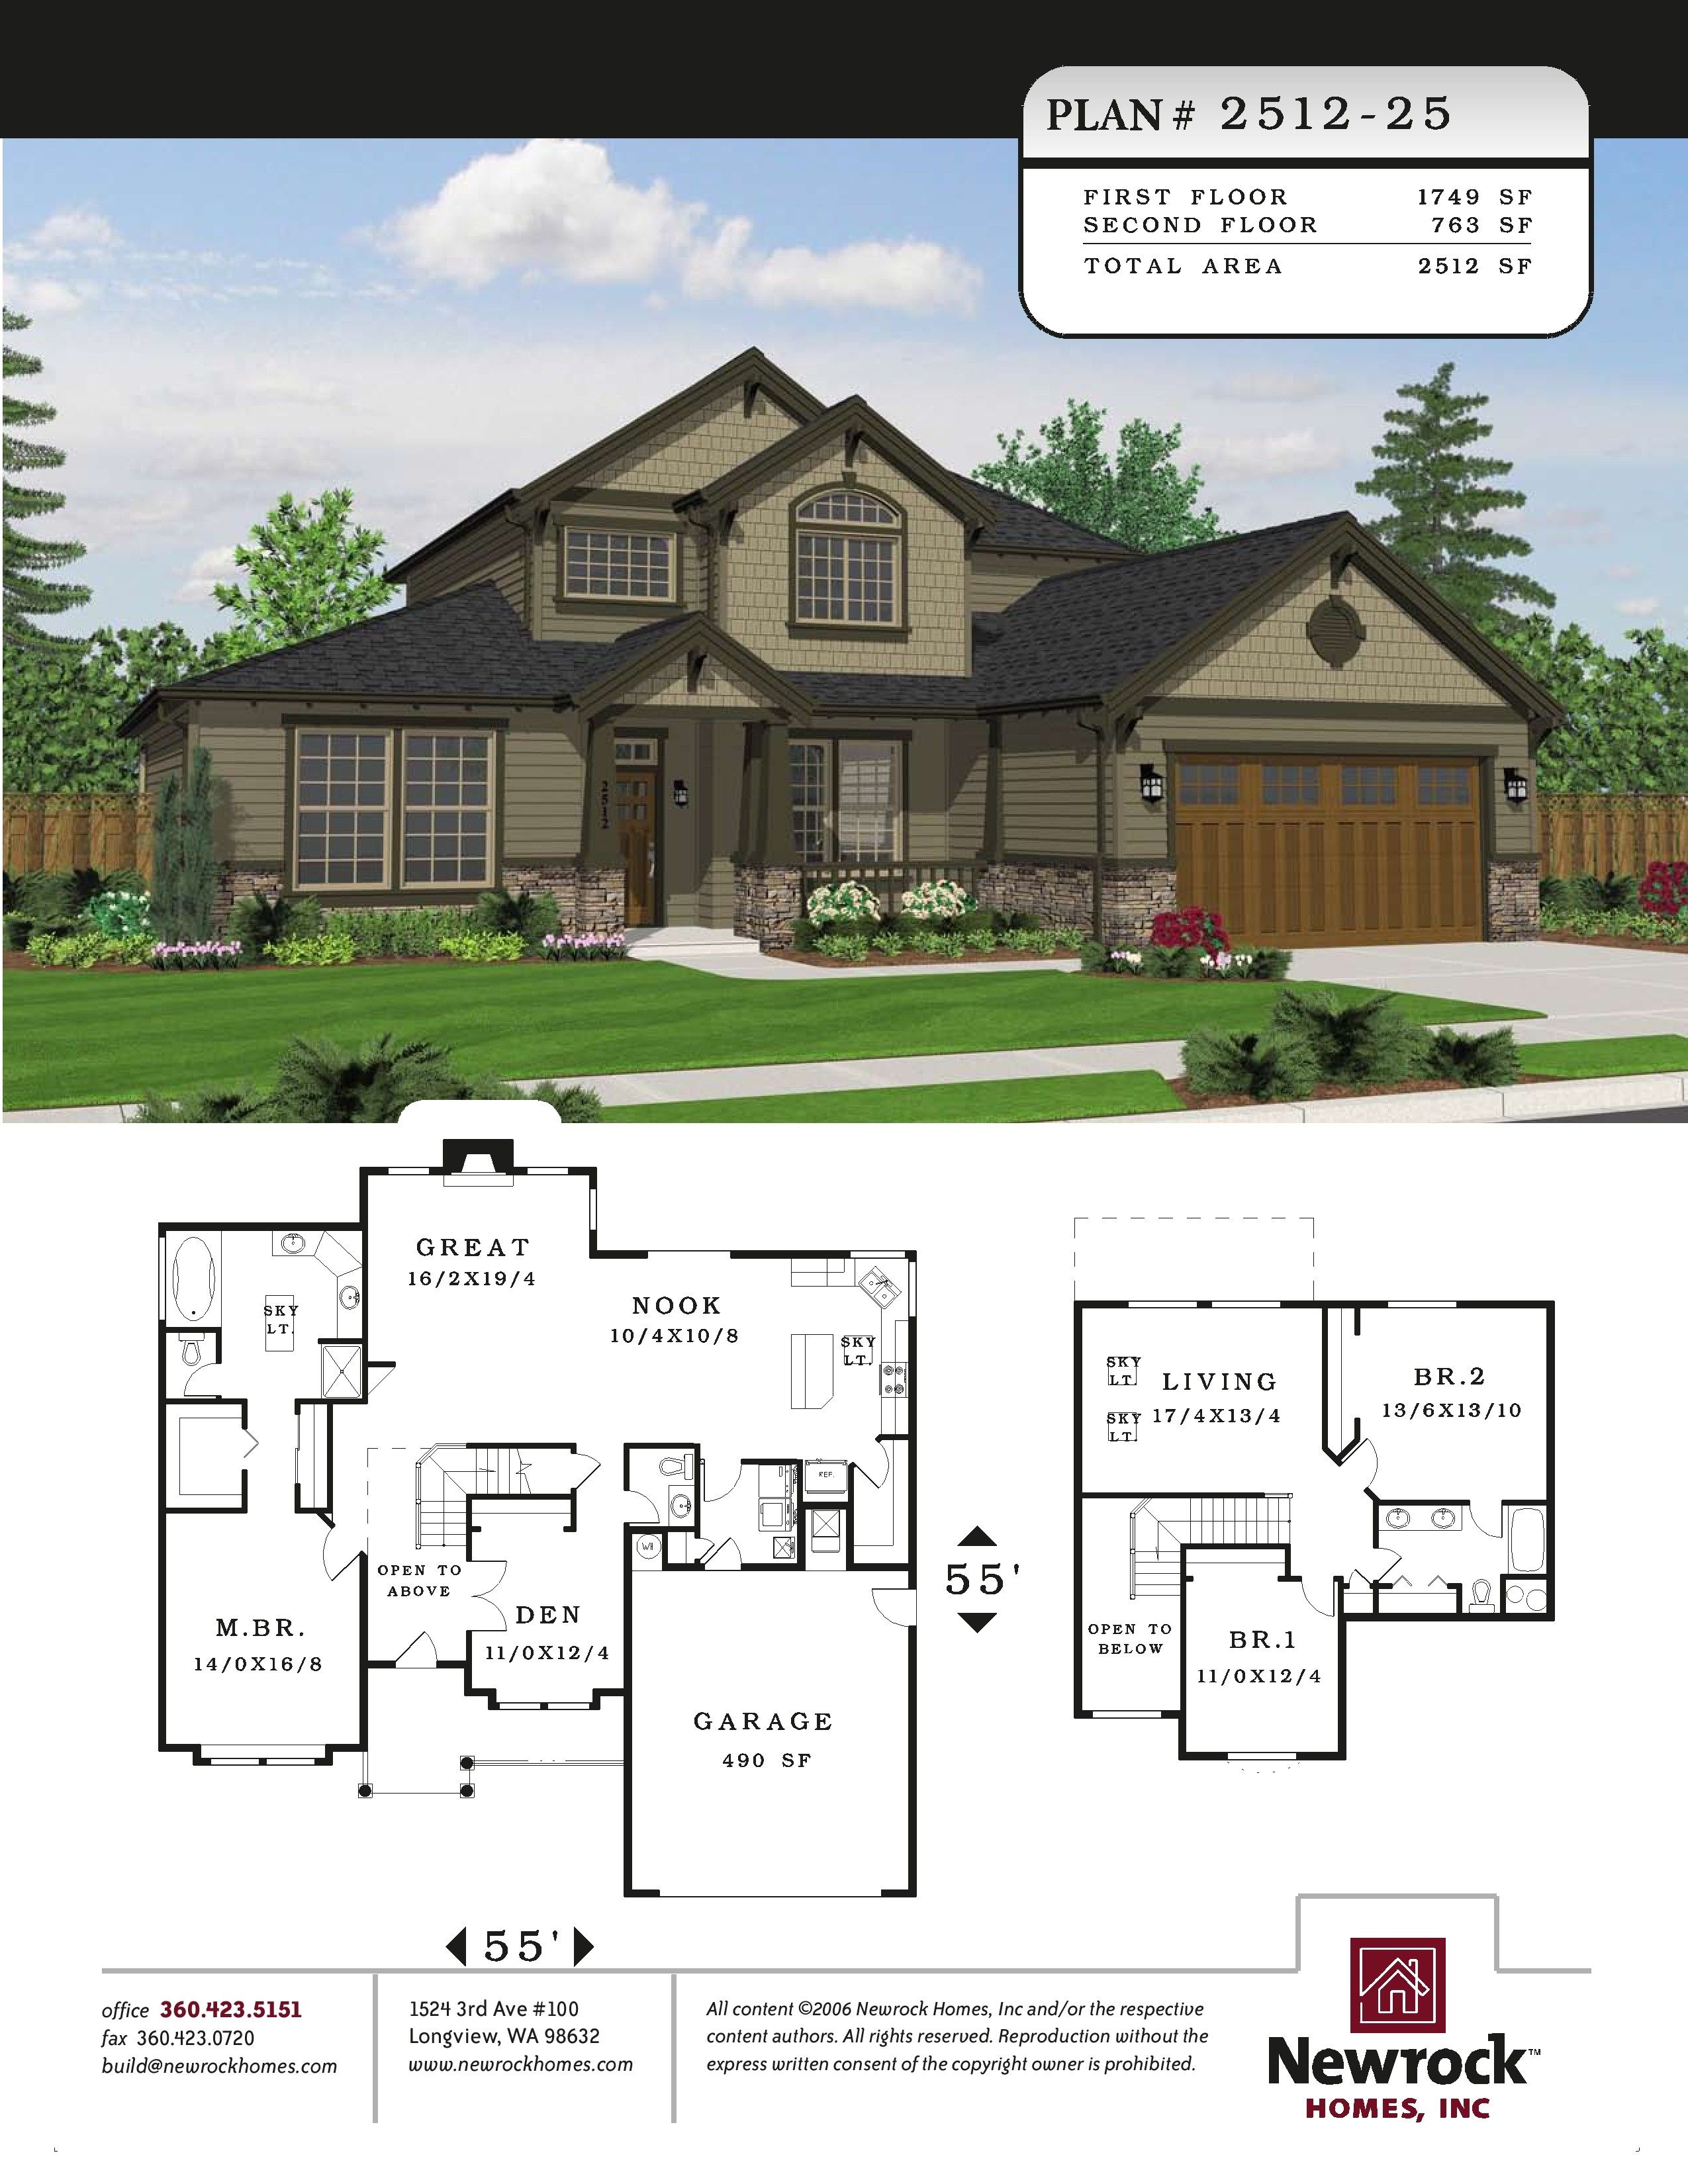 Newrock Homes Plan 2512 25 Design Your Dream House Design Your Own Home House Design Games